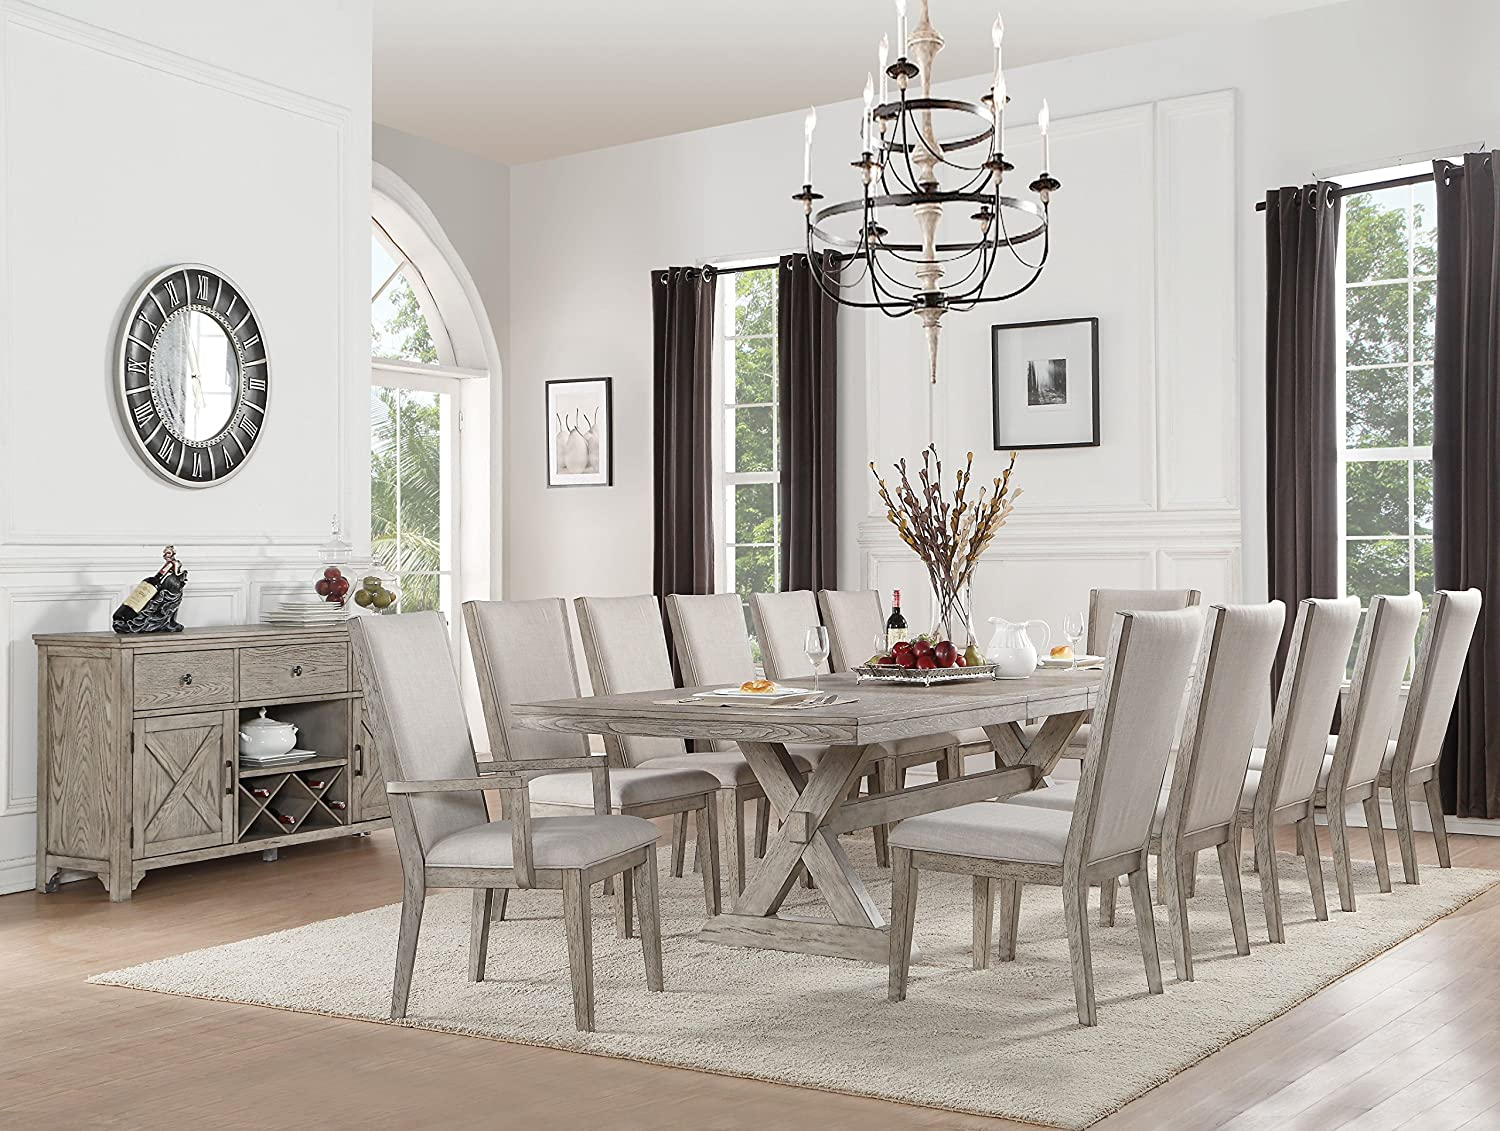 Amazon com acme furniture 72860 rocky dining table gray oak chairs